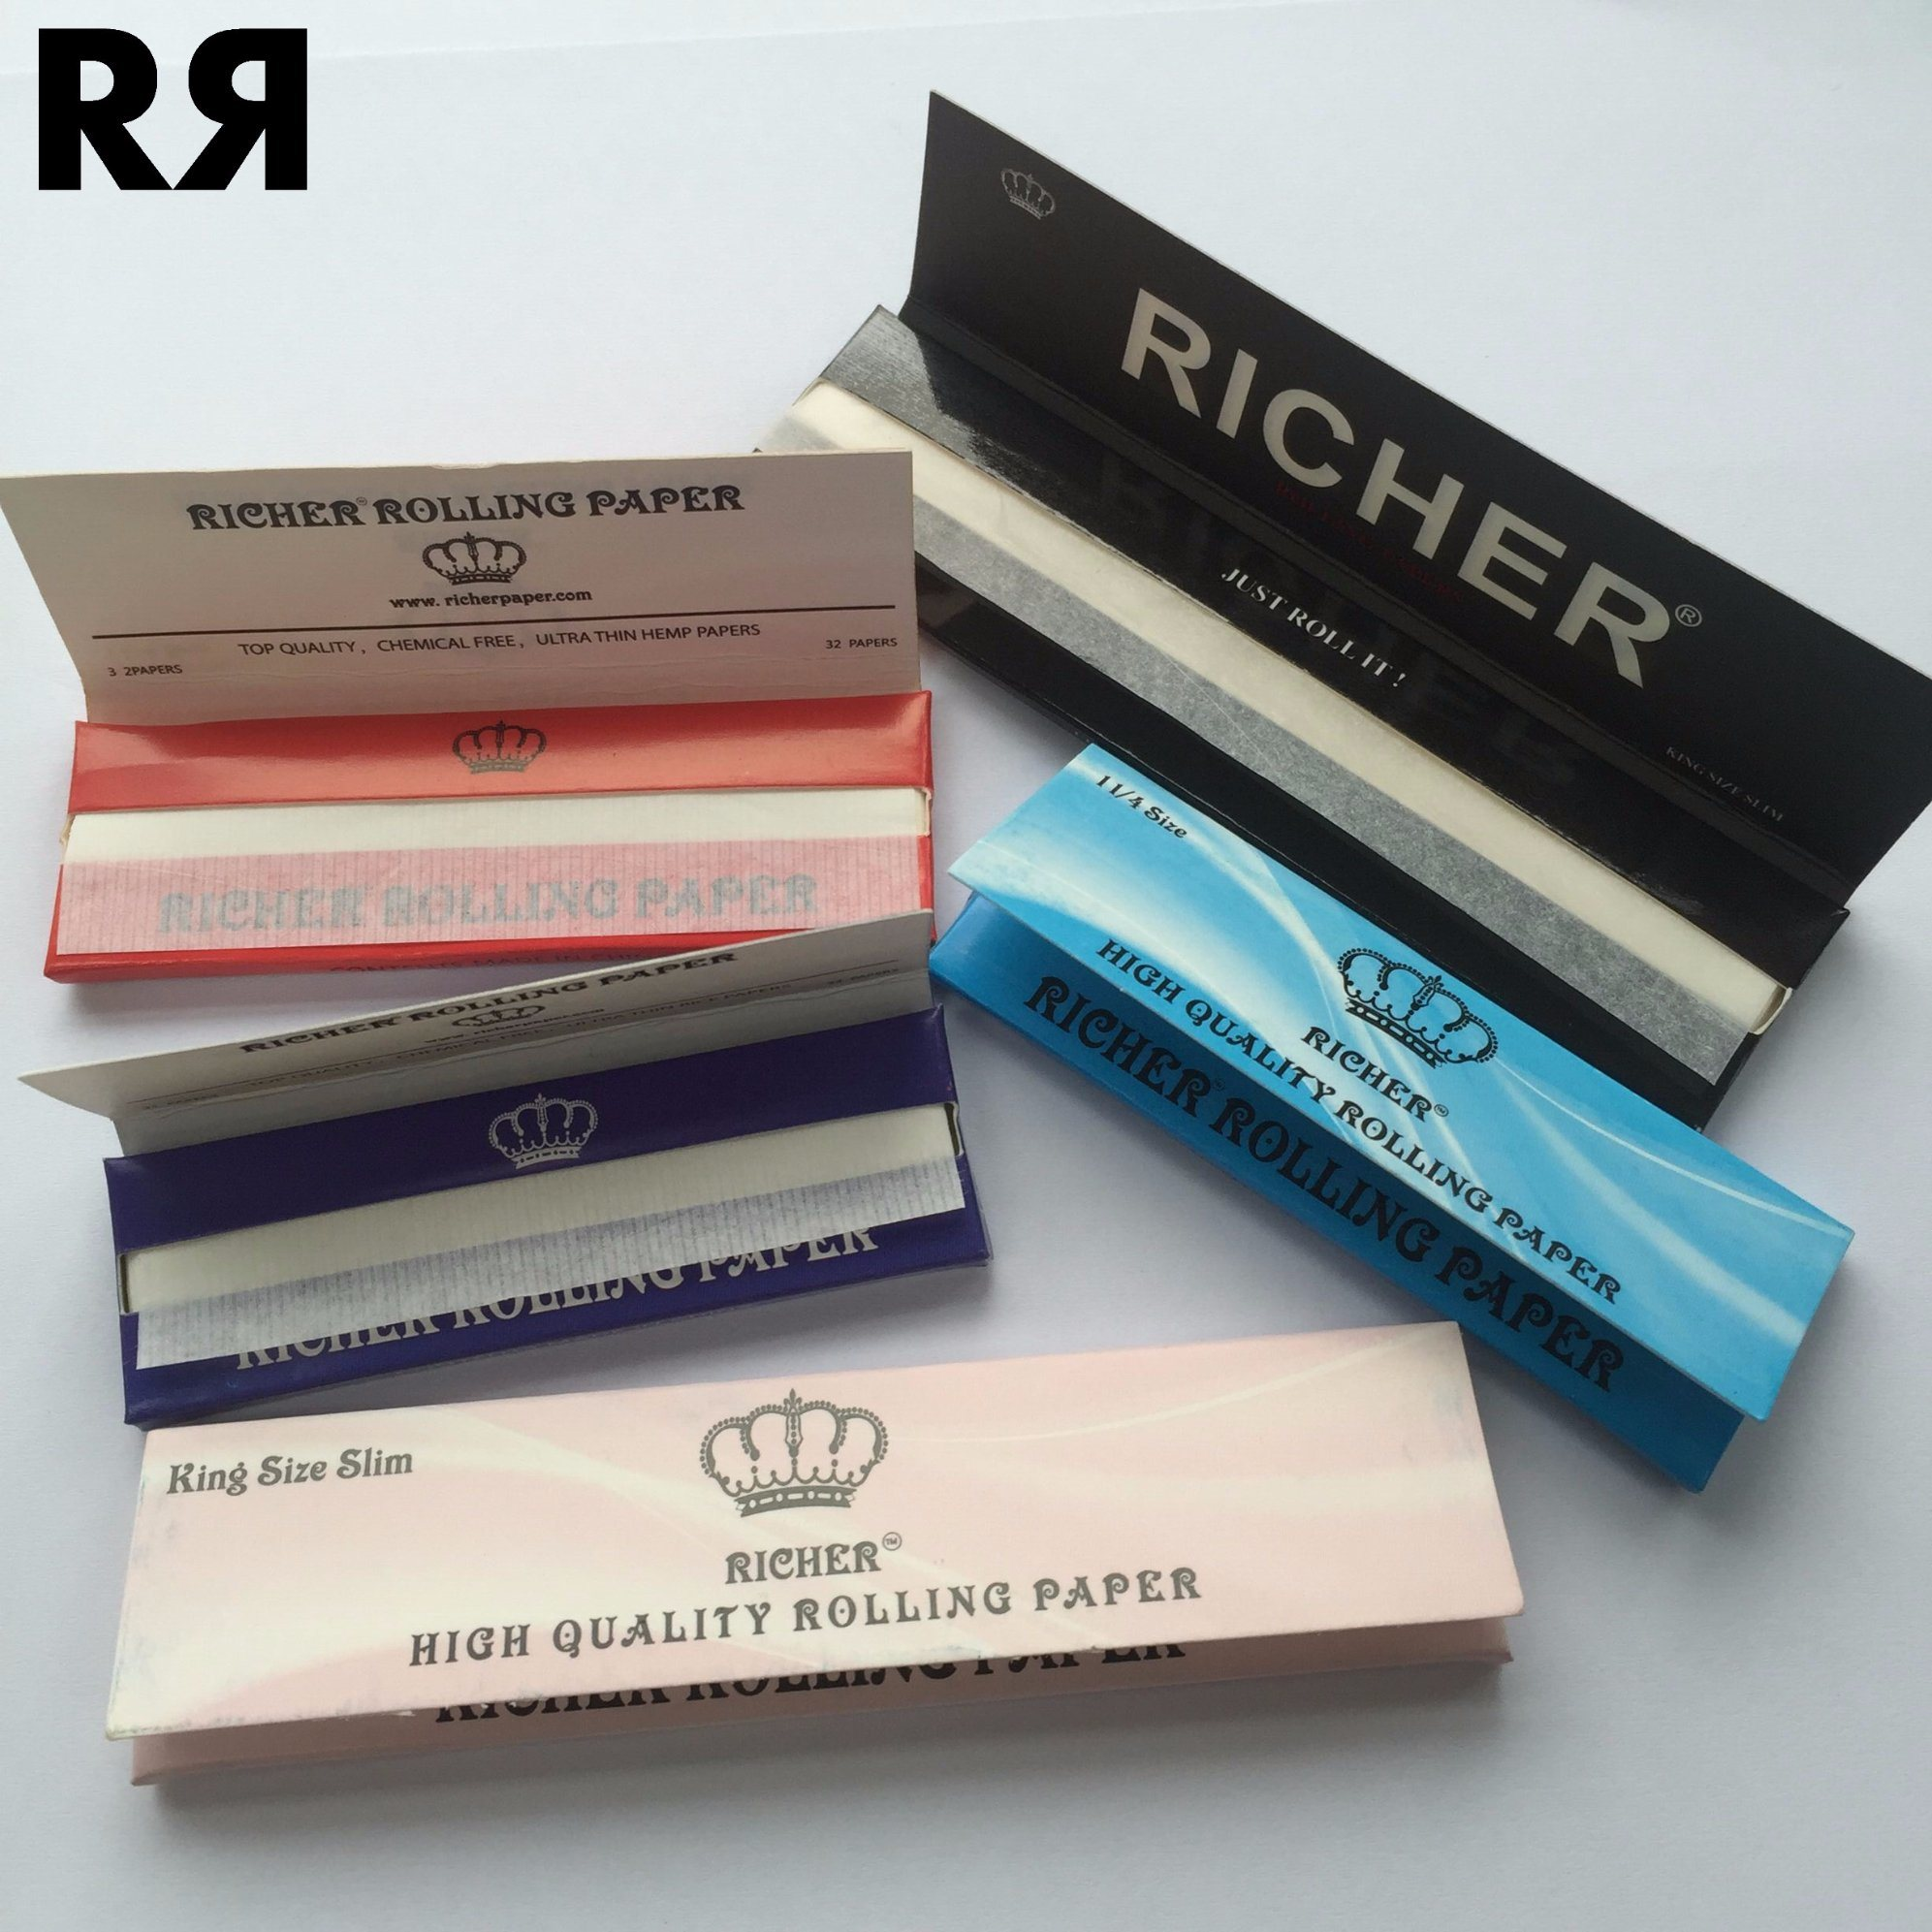 Richer Custom Brand Hemp Cigarette Smoking Rolling Paper with Filter Tips